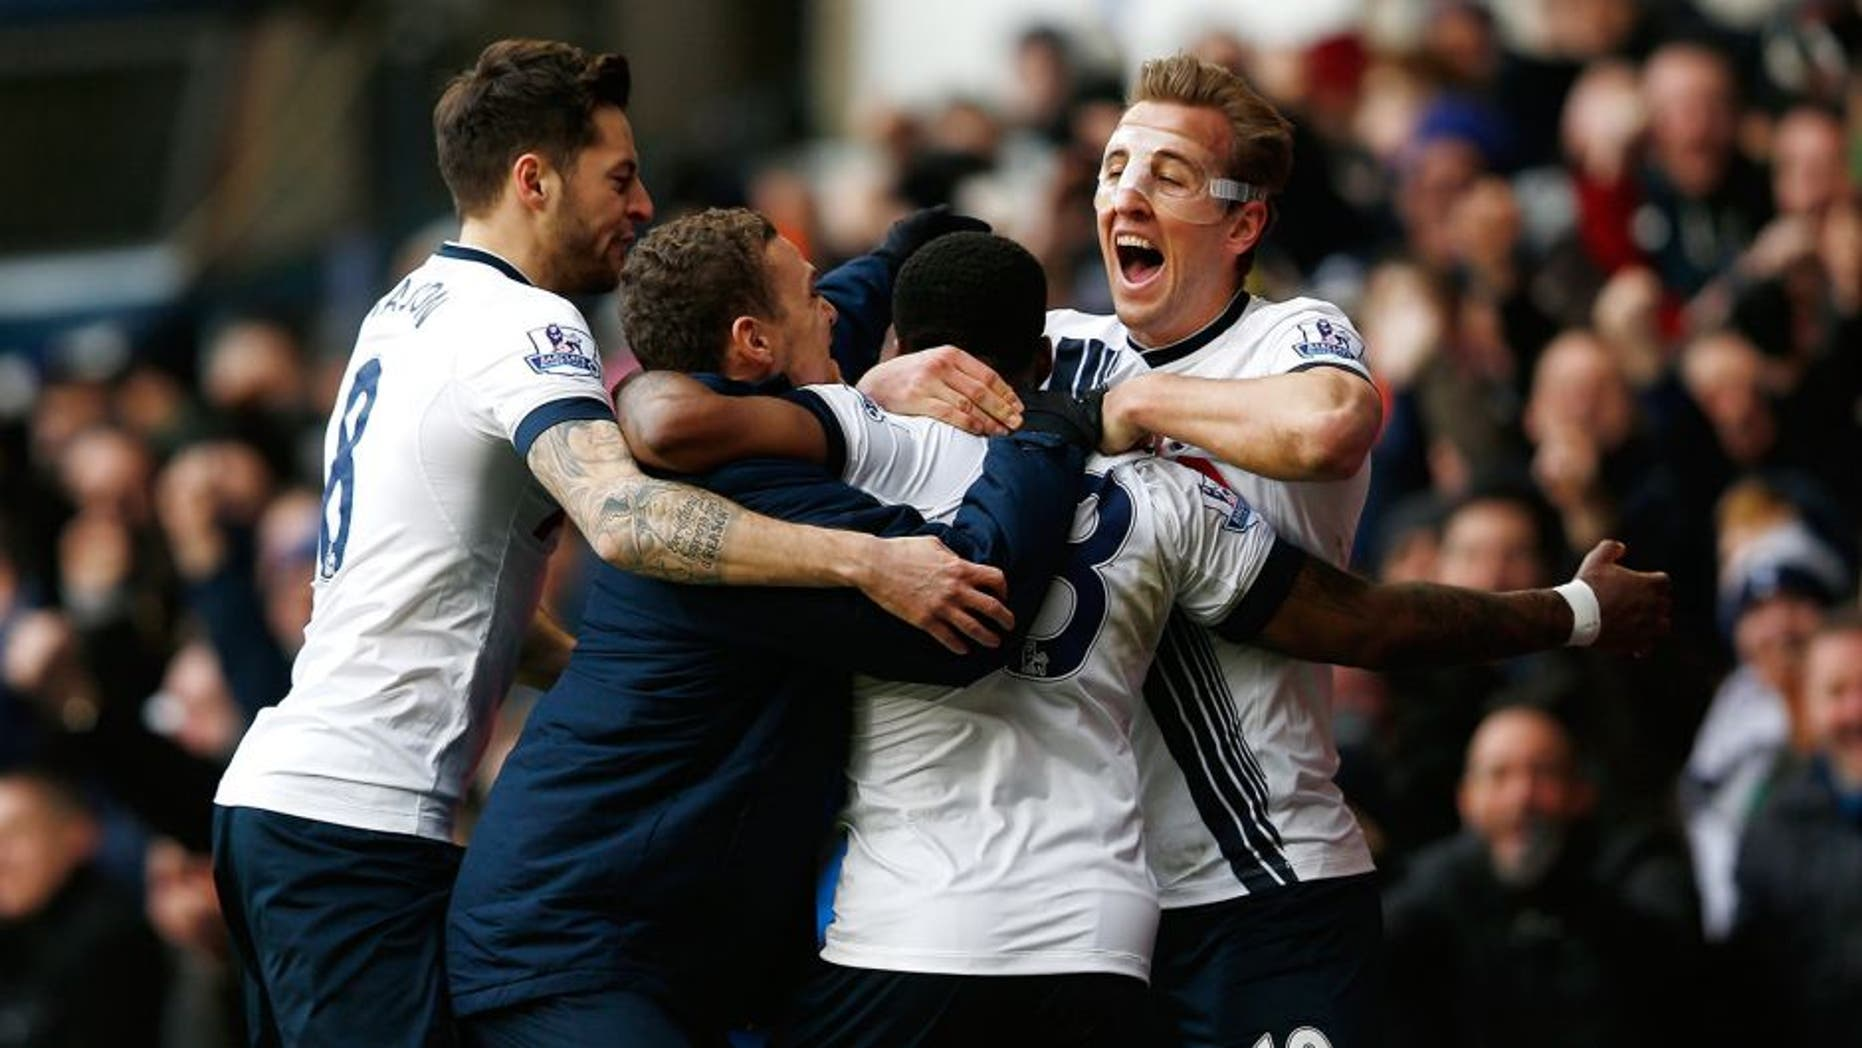 LONDON, ENGLAND - FEBRUARY 28: Danny Rose of Tottenham Hotspur is mobbed by team mates including Harry Kane of Tottenham Hotspur after scoring his team's second goal during the Barclays Premier League match between Tottenham Hotspur and Swansea City at White Hart Lane on February 28, 2016 in London, England. (Photo by Dean Mouhtaropoulos/Getty Images)